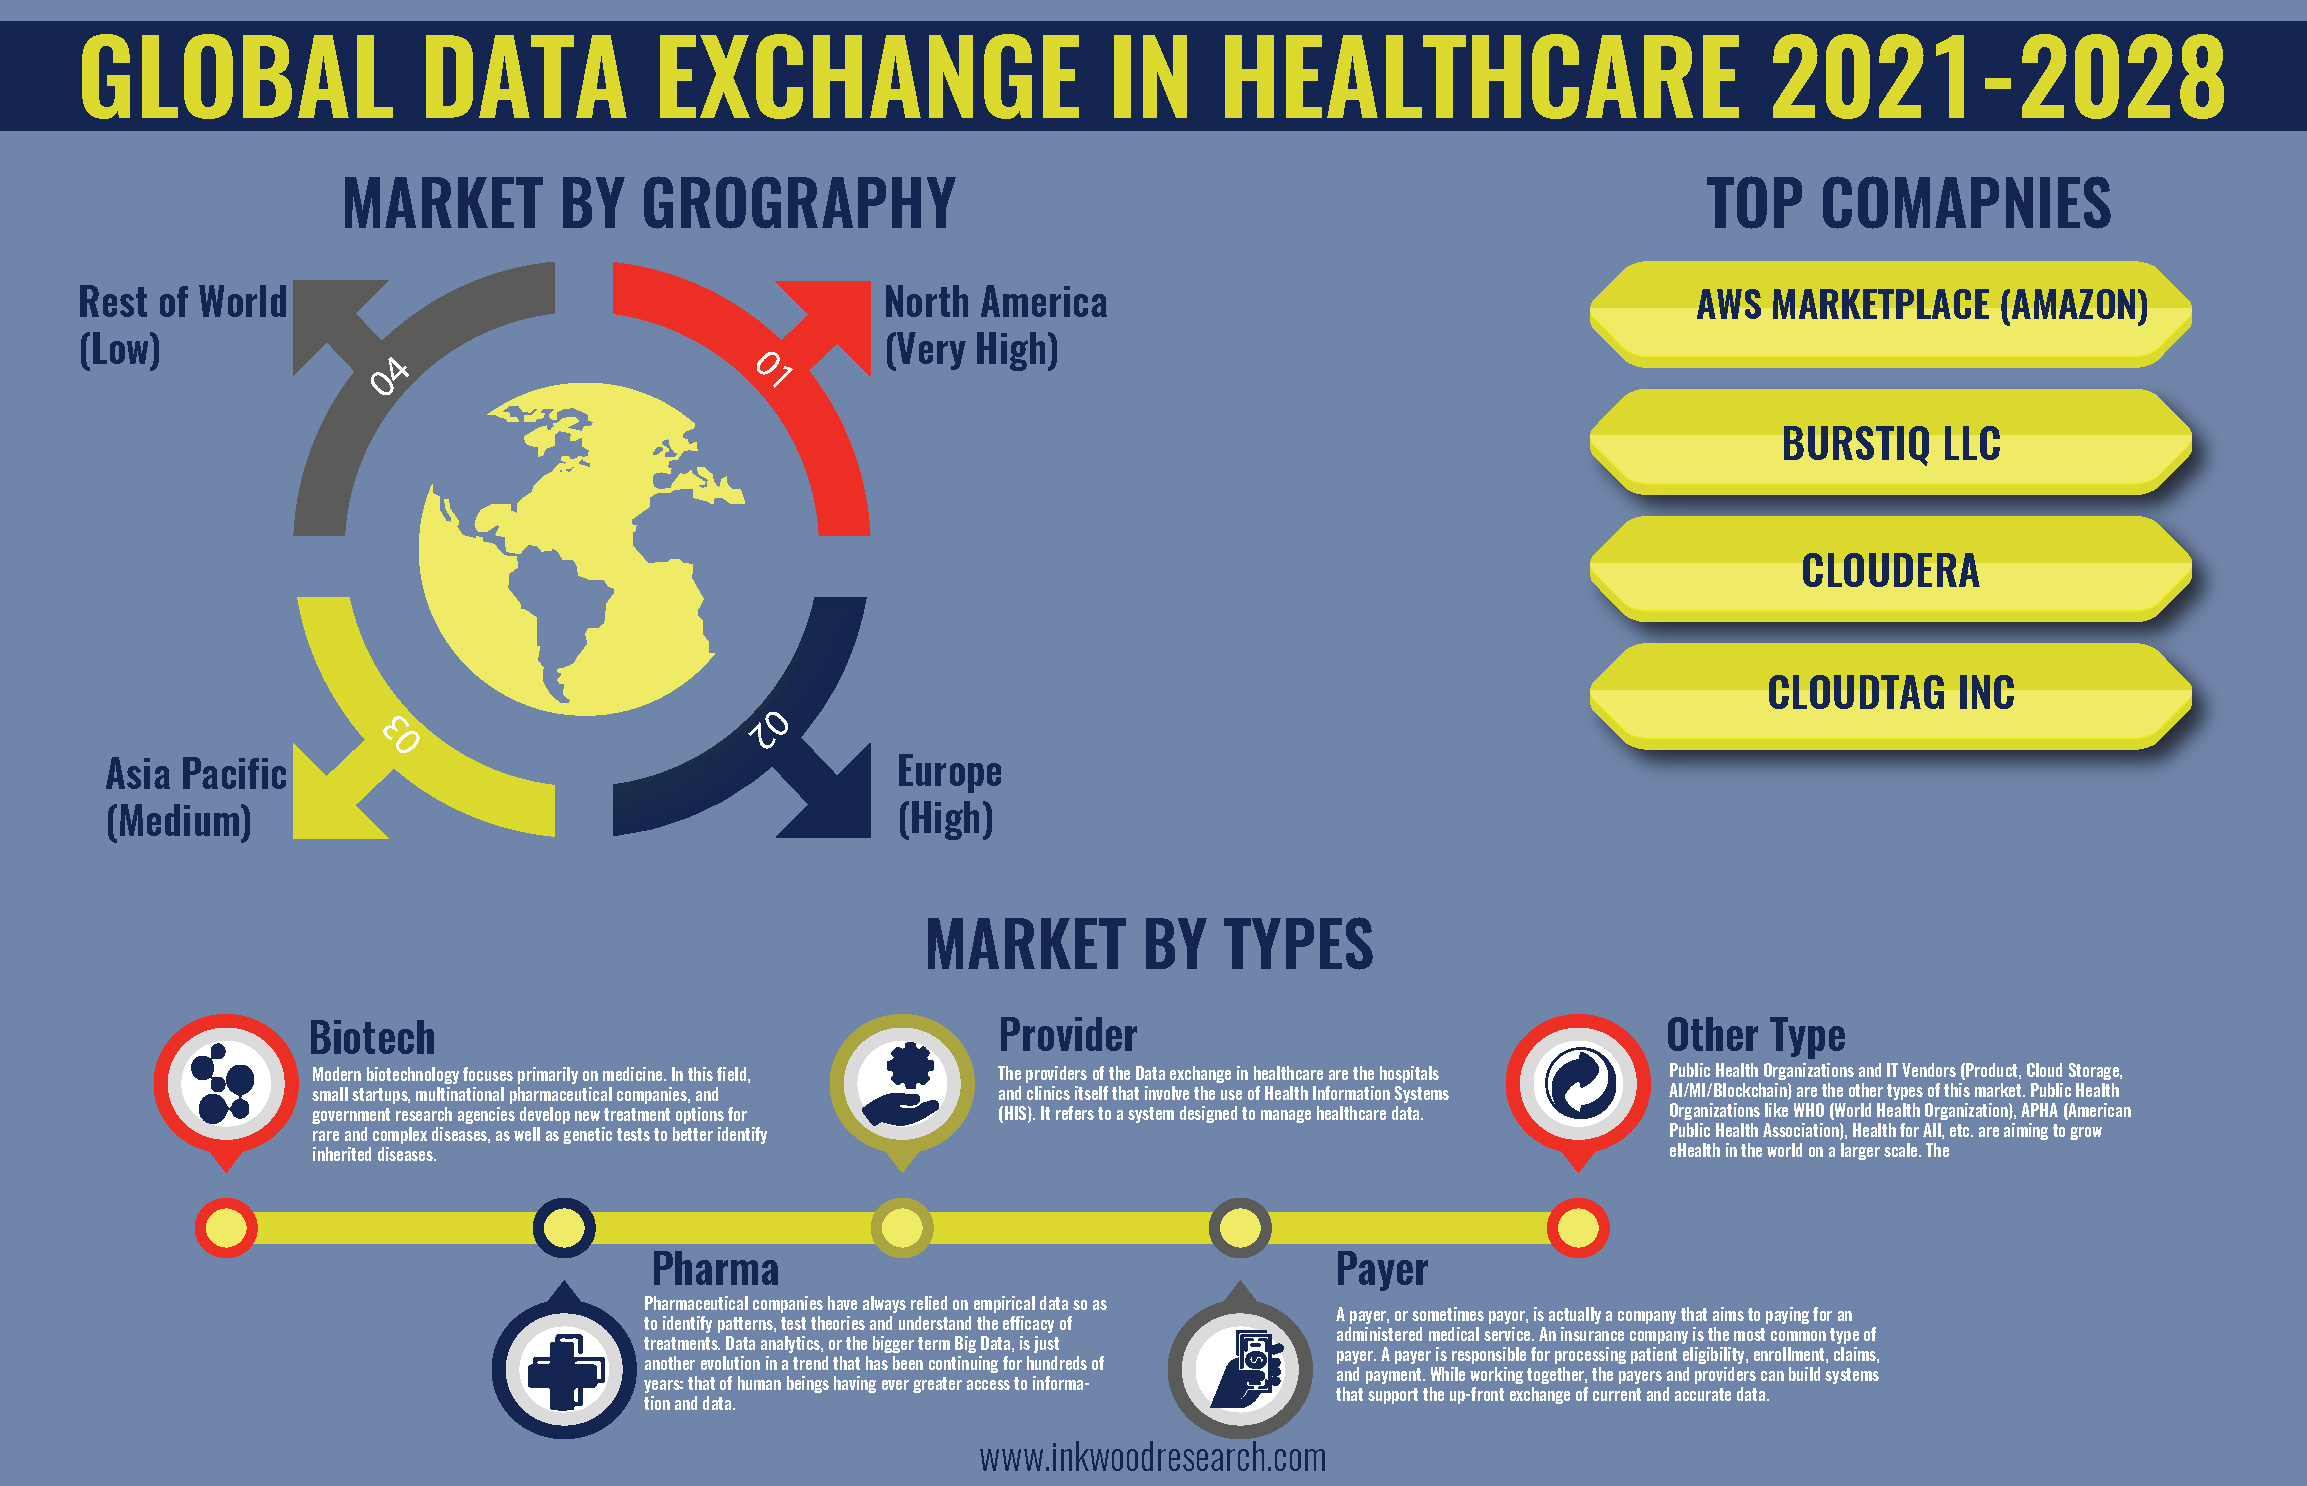 Surge in Digitalization to Push the Global Data Exchange in Healthcare Market Growth